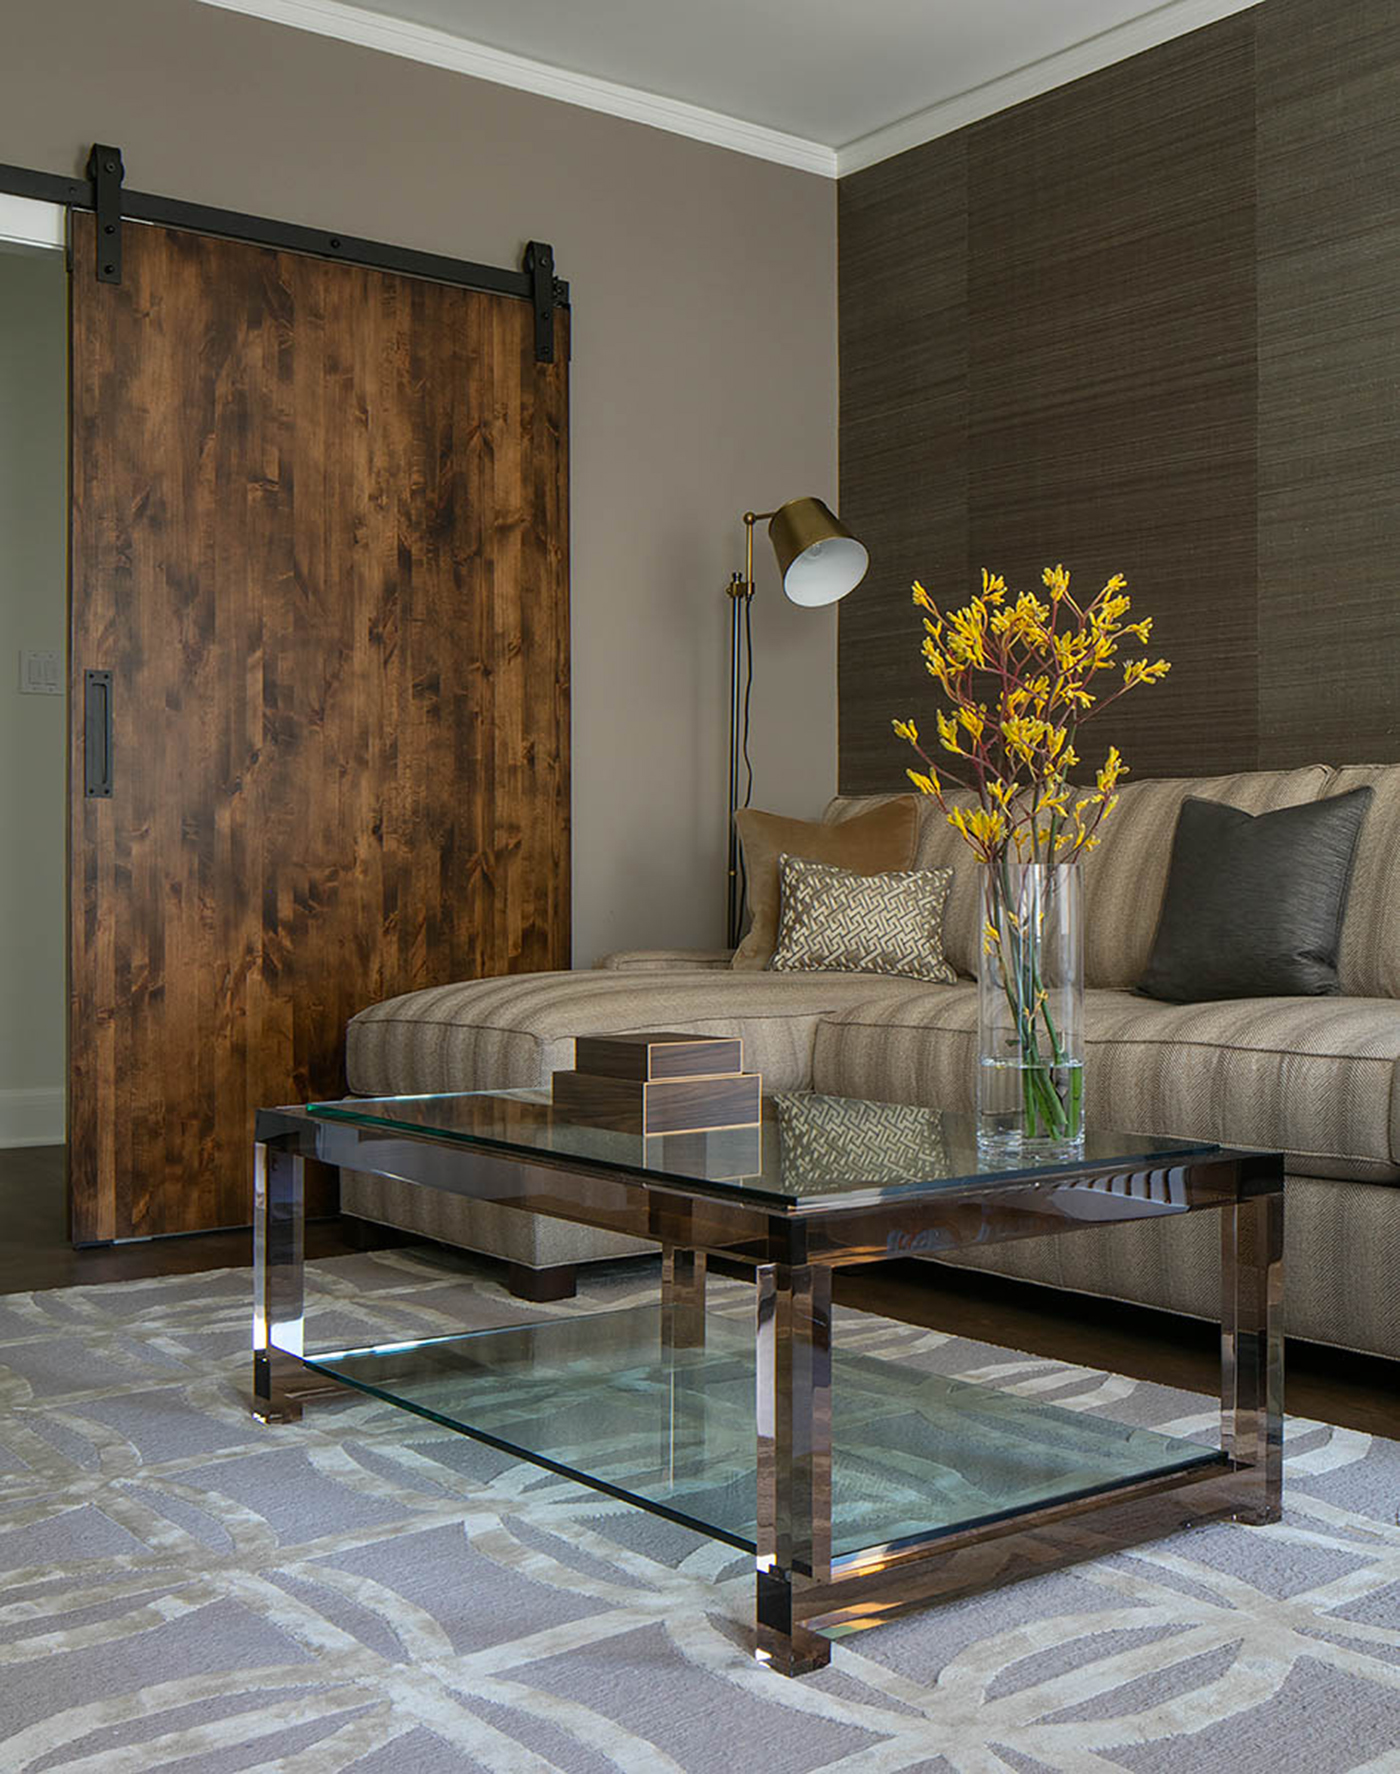 Sitting room with a refined take on a barn door and lucite coffee table by bd home